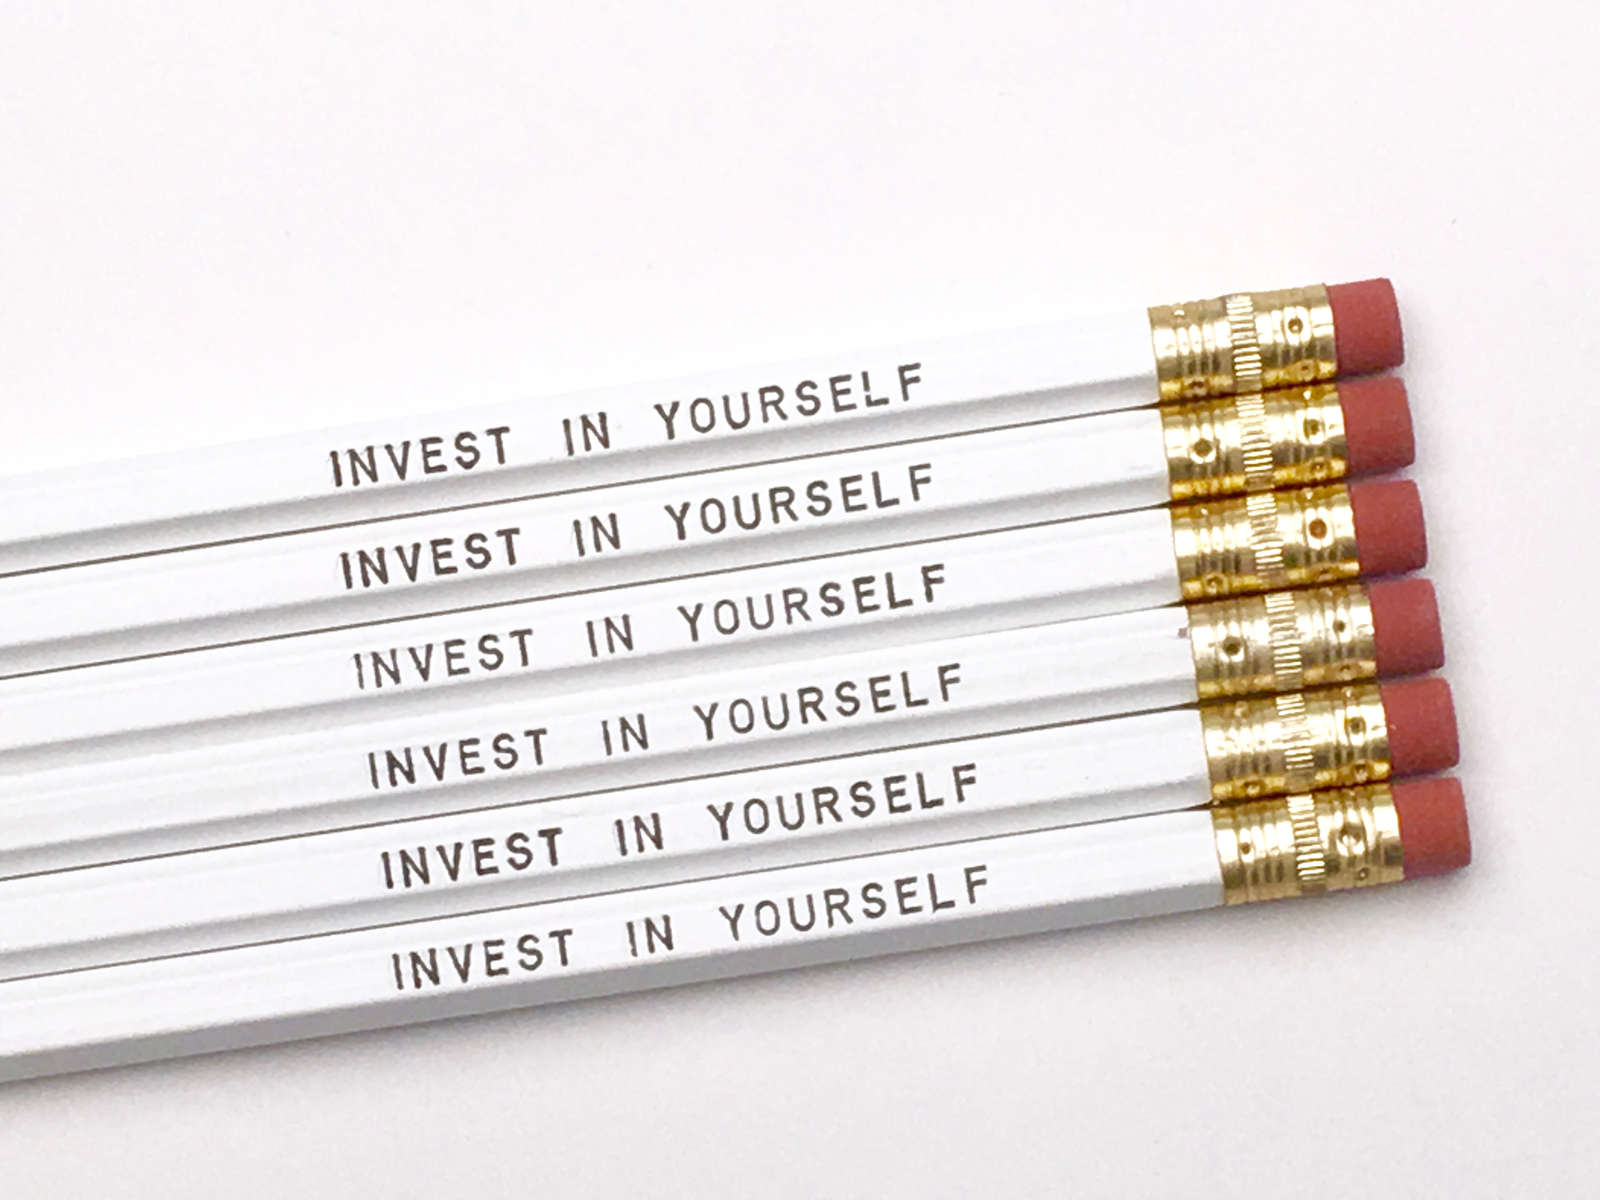 purchase herethis pencil set is perfect for any stationery lover. // if you ever want to be better than you are right this very minute, you must choose to invest in yourself. // whether it's investing time or money or priority... it all adds up. // you, my friend, are worth it, every single time!set of six imprinted hexagon pencils // white pencils + black textunsharpened + packaged in a sealed cellophane sleeve (ready for gift giving)fantastic gift idea for teachers + students + anyone, really... especially yourself!